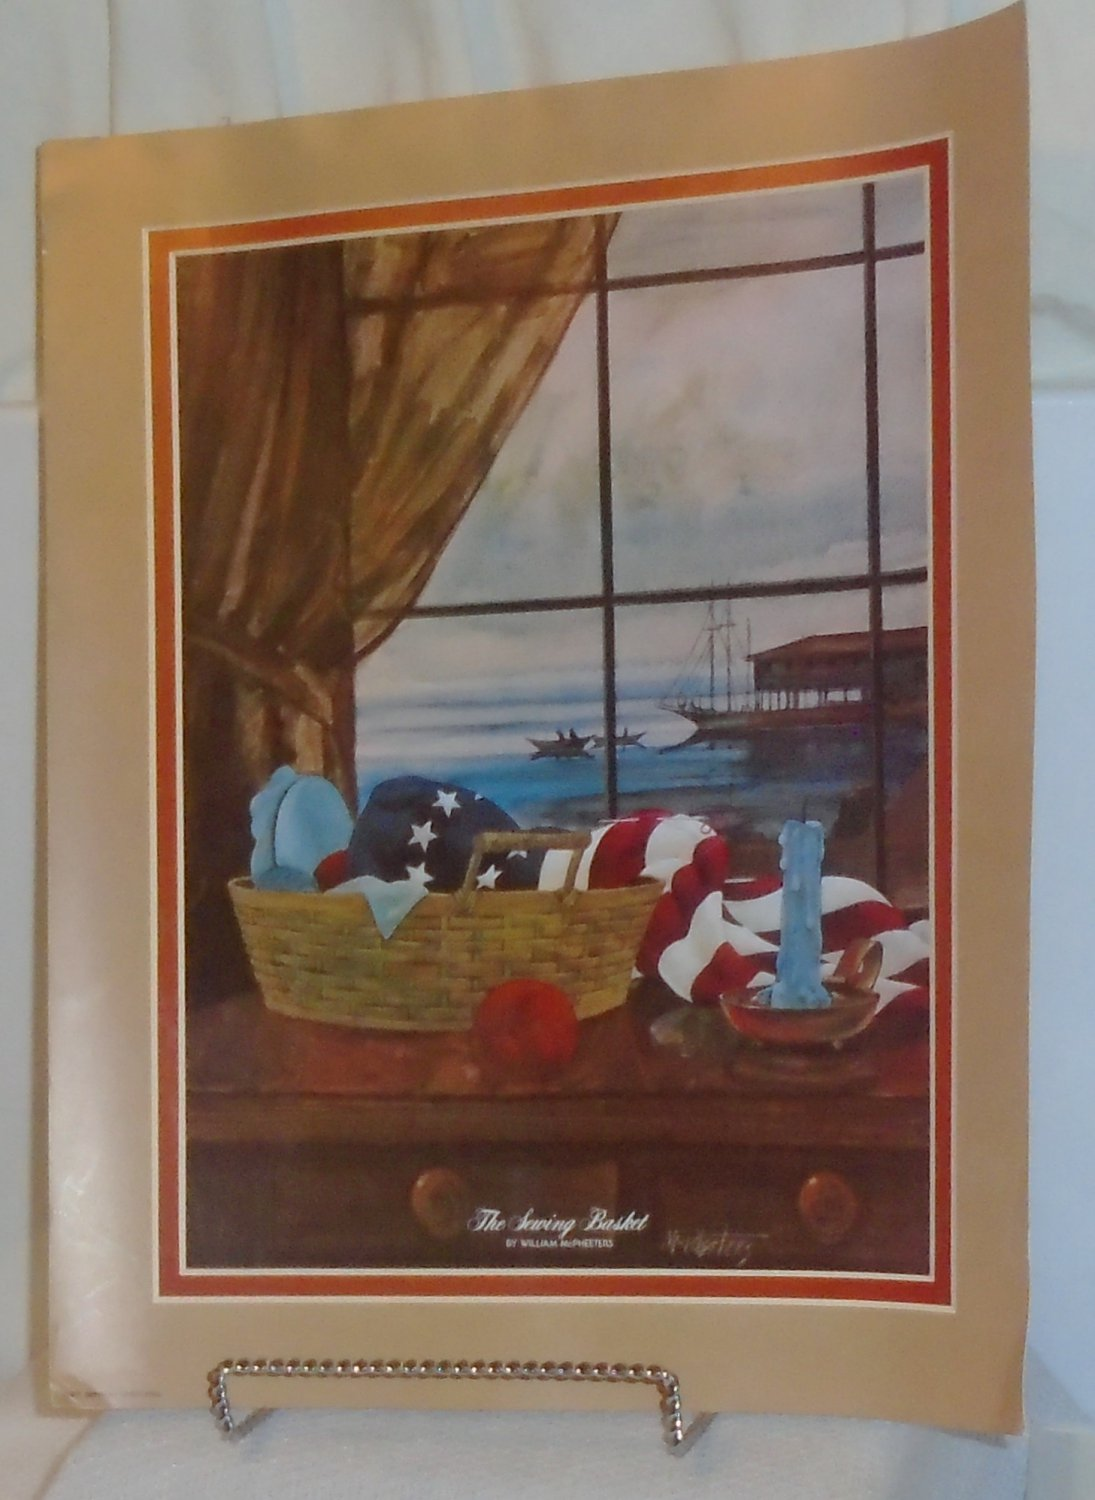 The Sewing Basket -Poster-William McPheeter 1975 American Advertisers